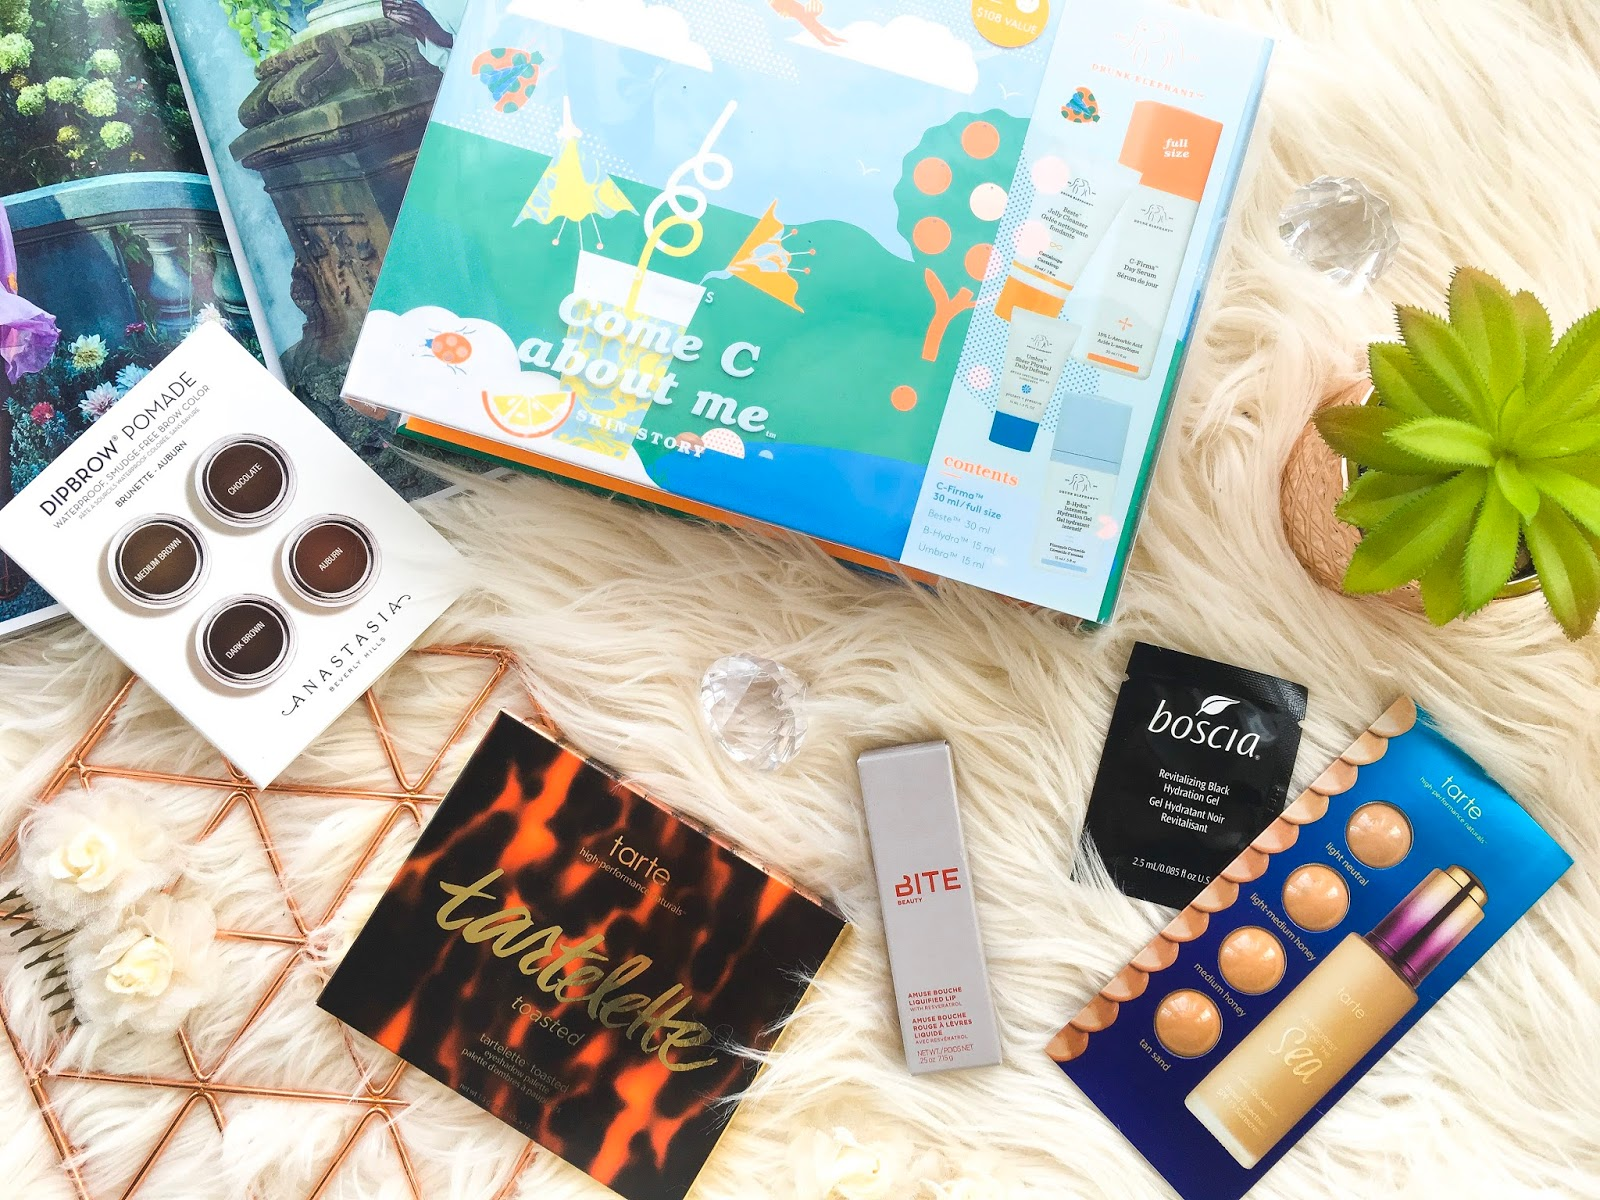 sephora haul uk, uk sephora haul, drunk elephant come c about me set, bite beauty amuse bouche chai lipstick, abh dipbrow pomade, tarte tartelette toasted palette, tarte rainforest of the sea foundation, boscia hydrating gel